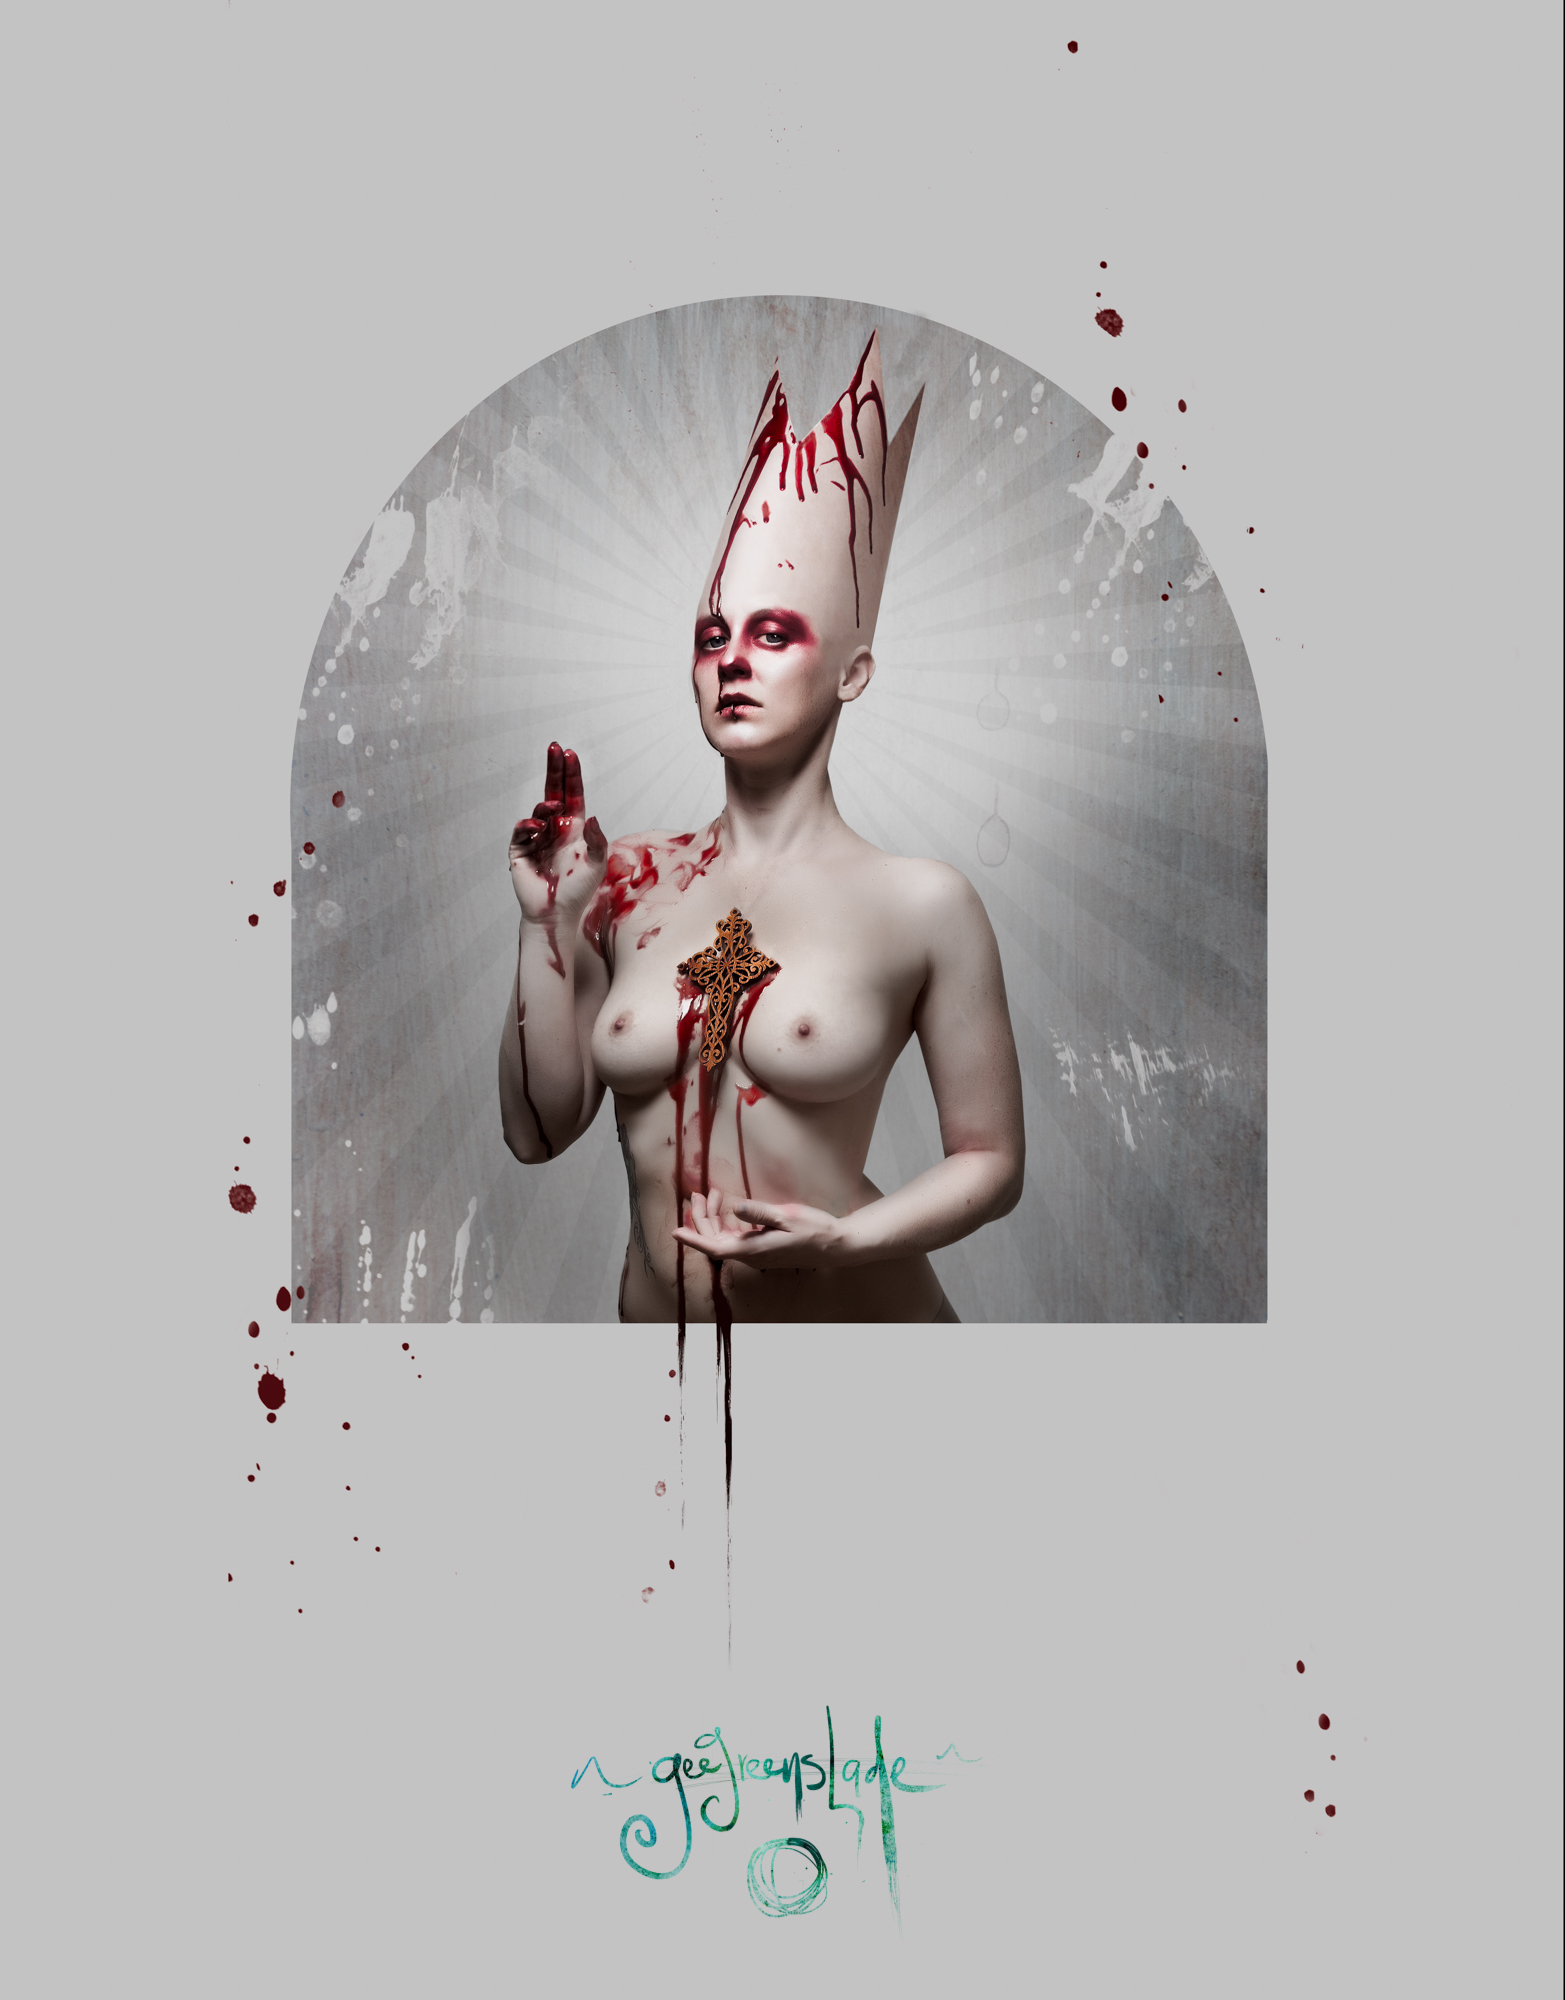 Gee-Greenslade-Artist-Photographer-Adelaide-South-Australia-bludlines-blood-crown.jpg